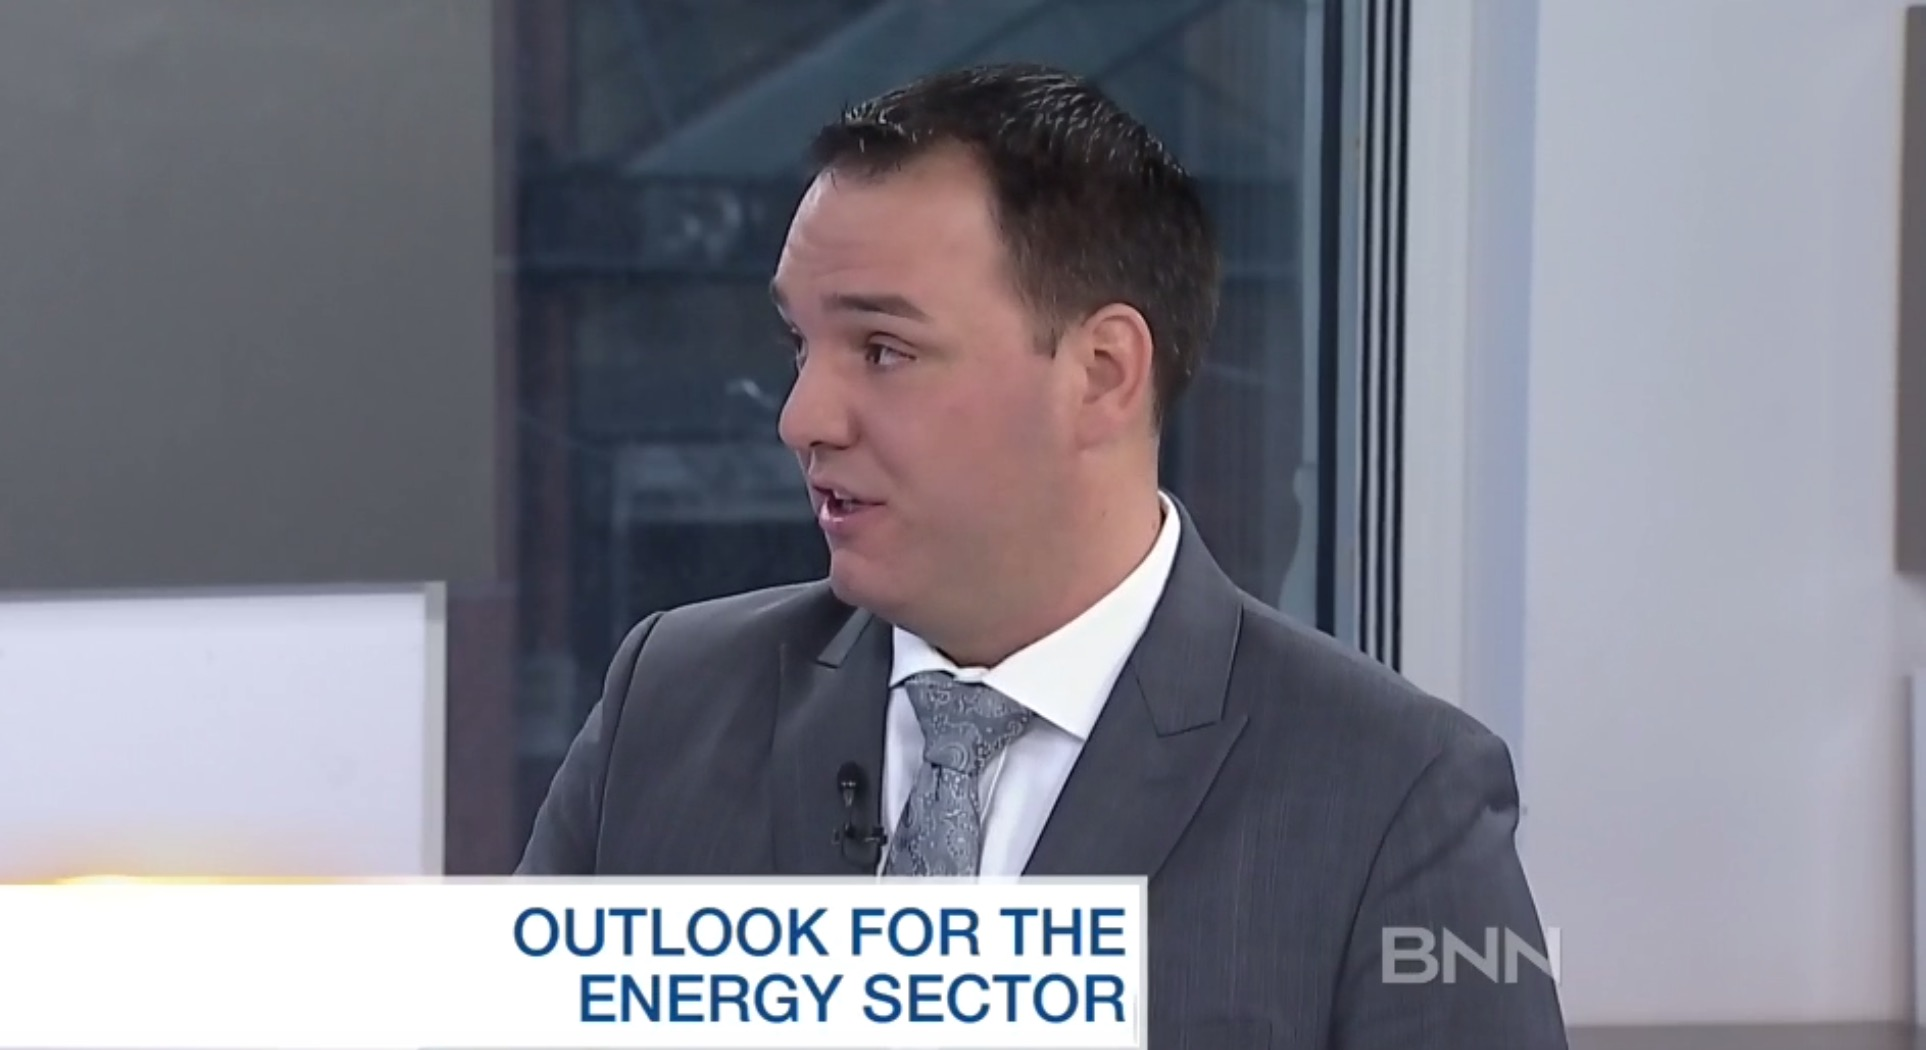 BNN: Rob Tétrault comments on oil prices